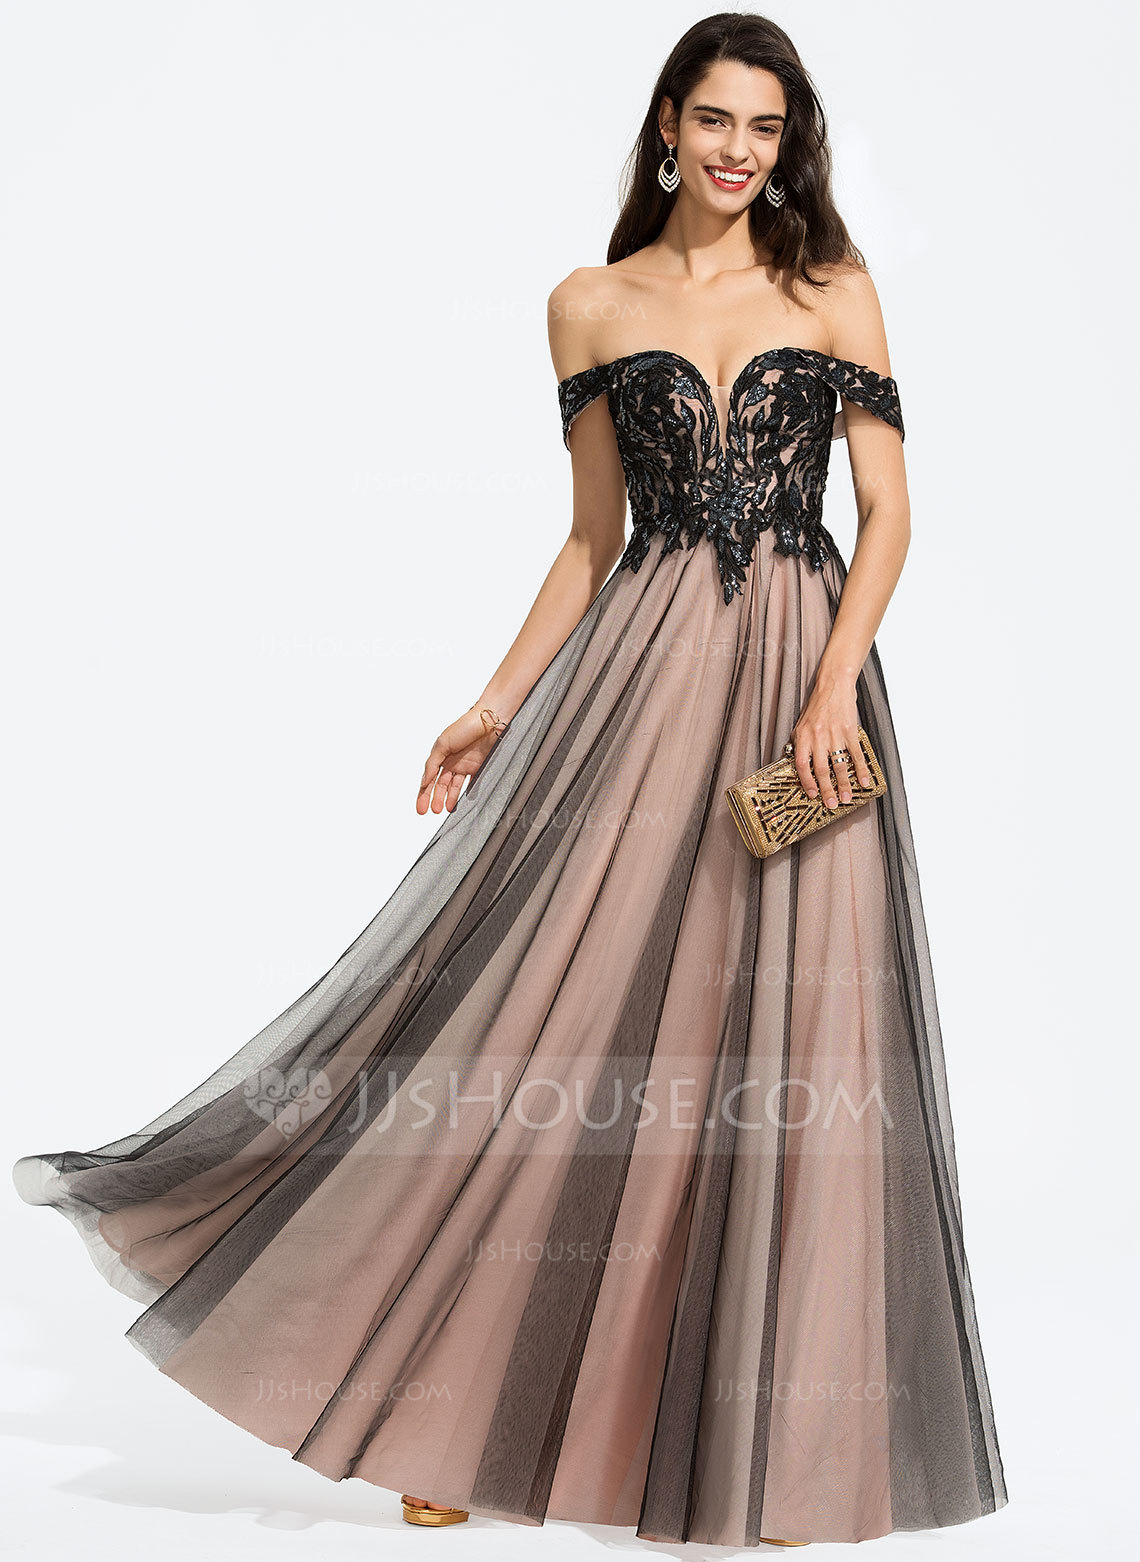 2056a424006 A-Line Off-the-Shoulder Floor-Length Tulle Prom Dresses With Sequins.  Loading zoom